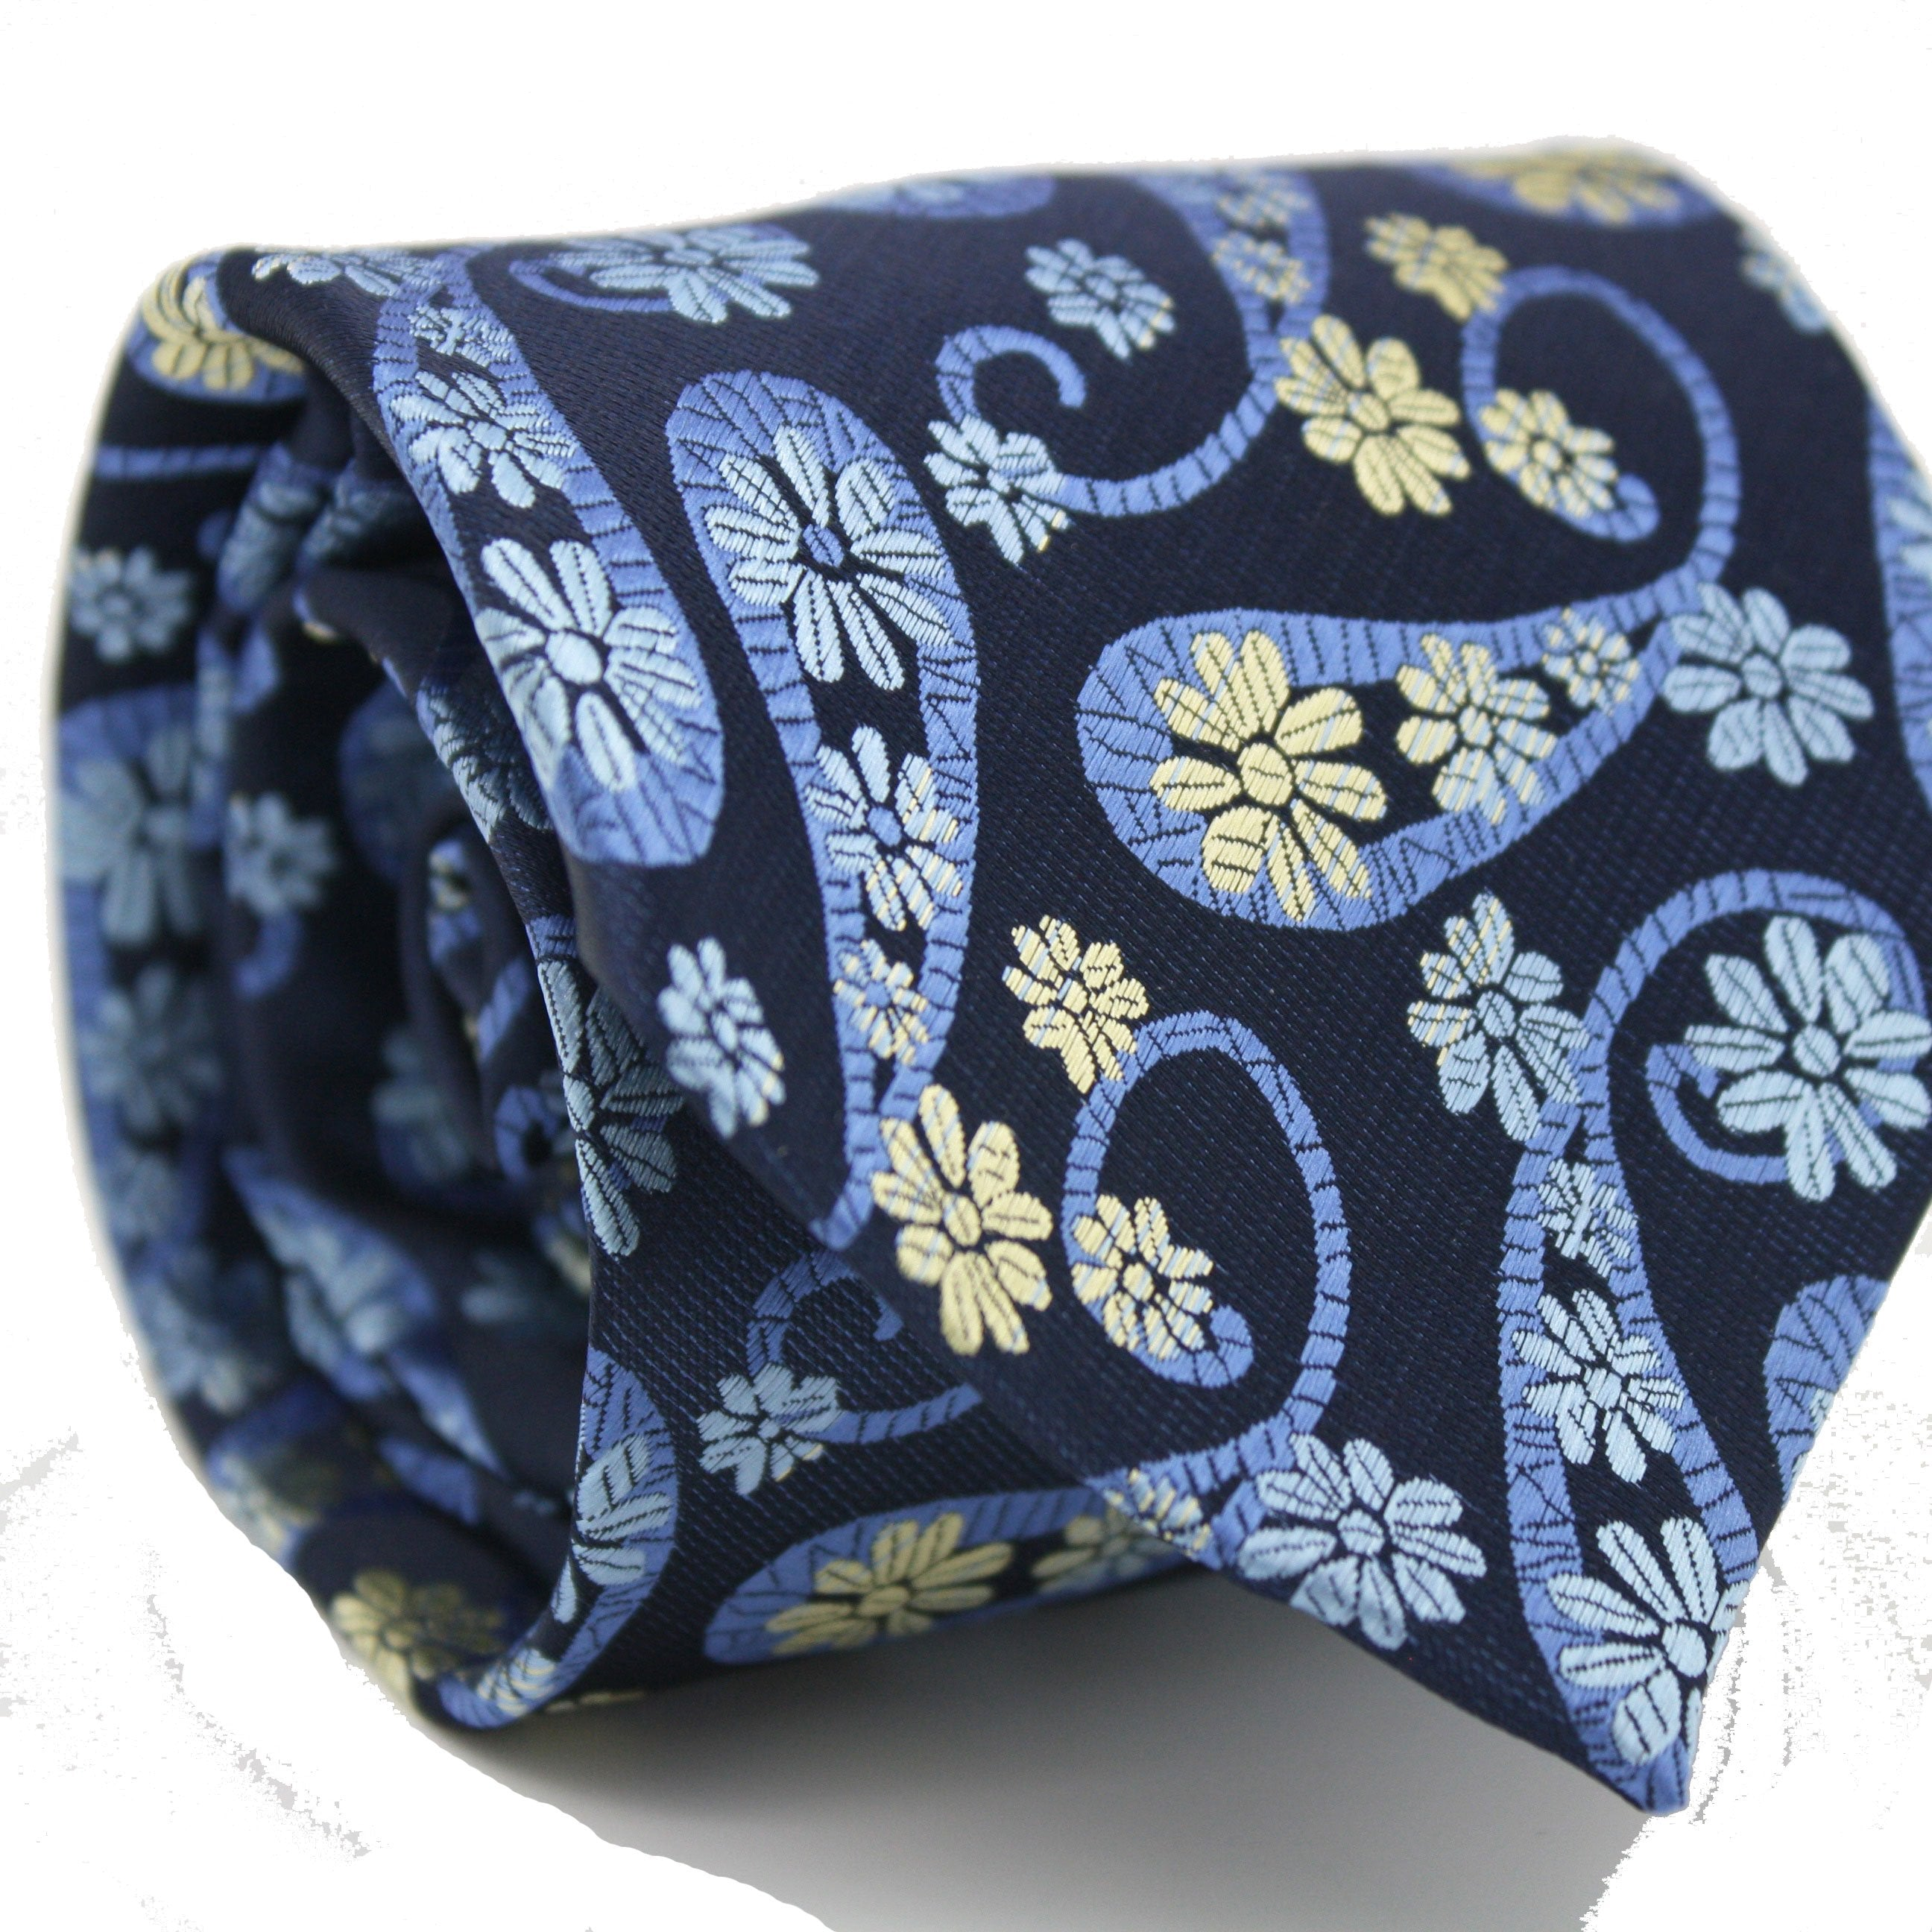 Mens Dads Classic Navy Floral Pattern Business Casual Necktie & Hanky Set DF-5 - Giorgio's Menswear